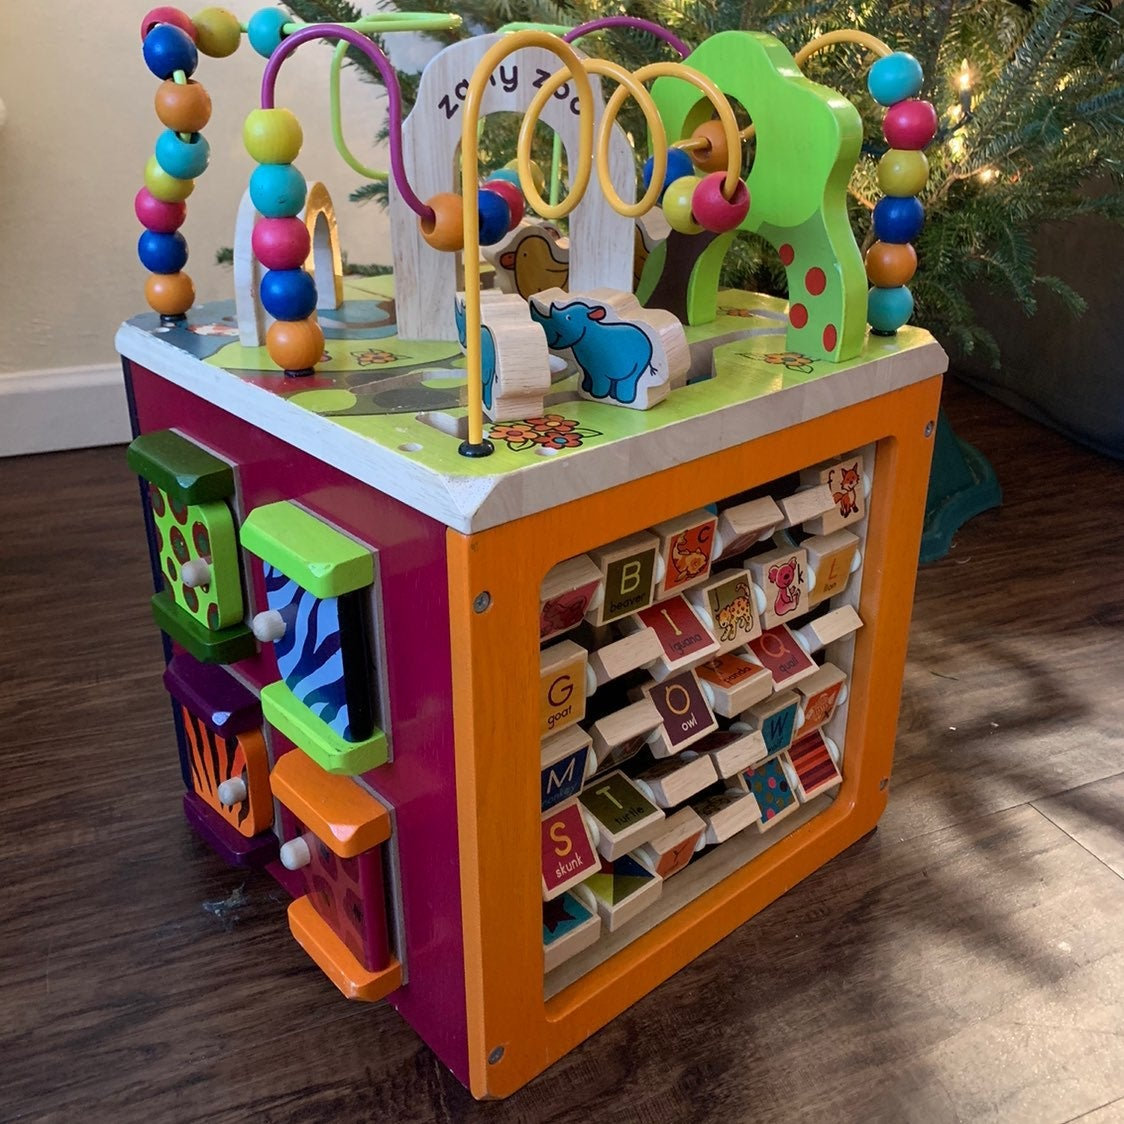 Zany Zoo Toddler Activity Cube